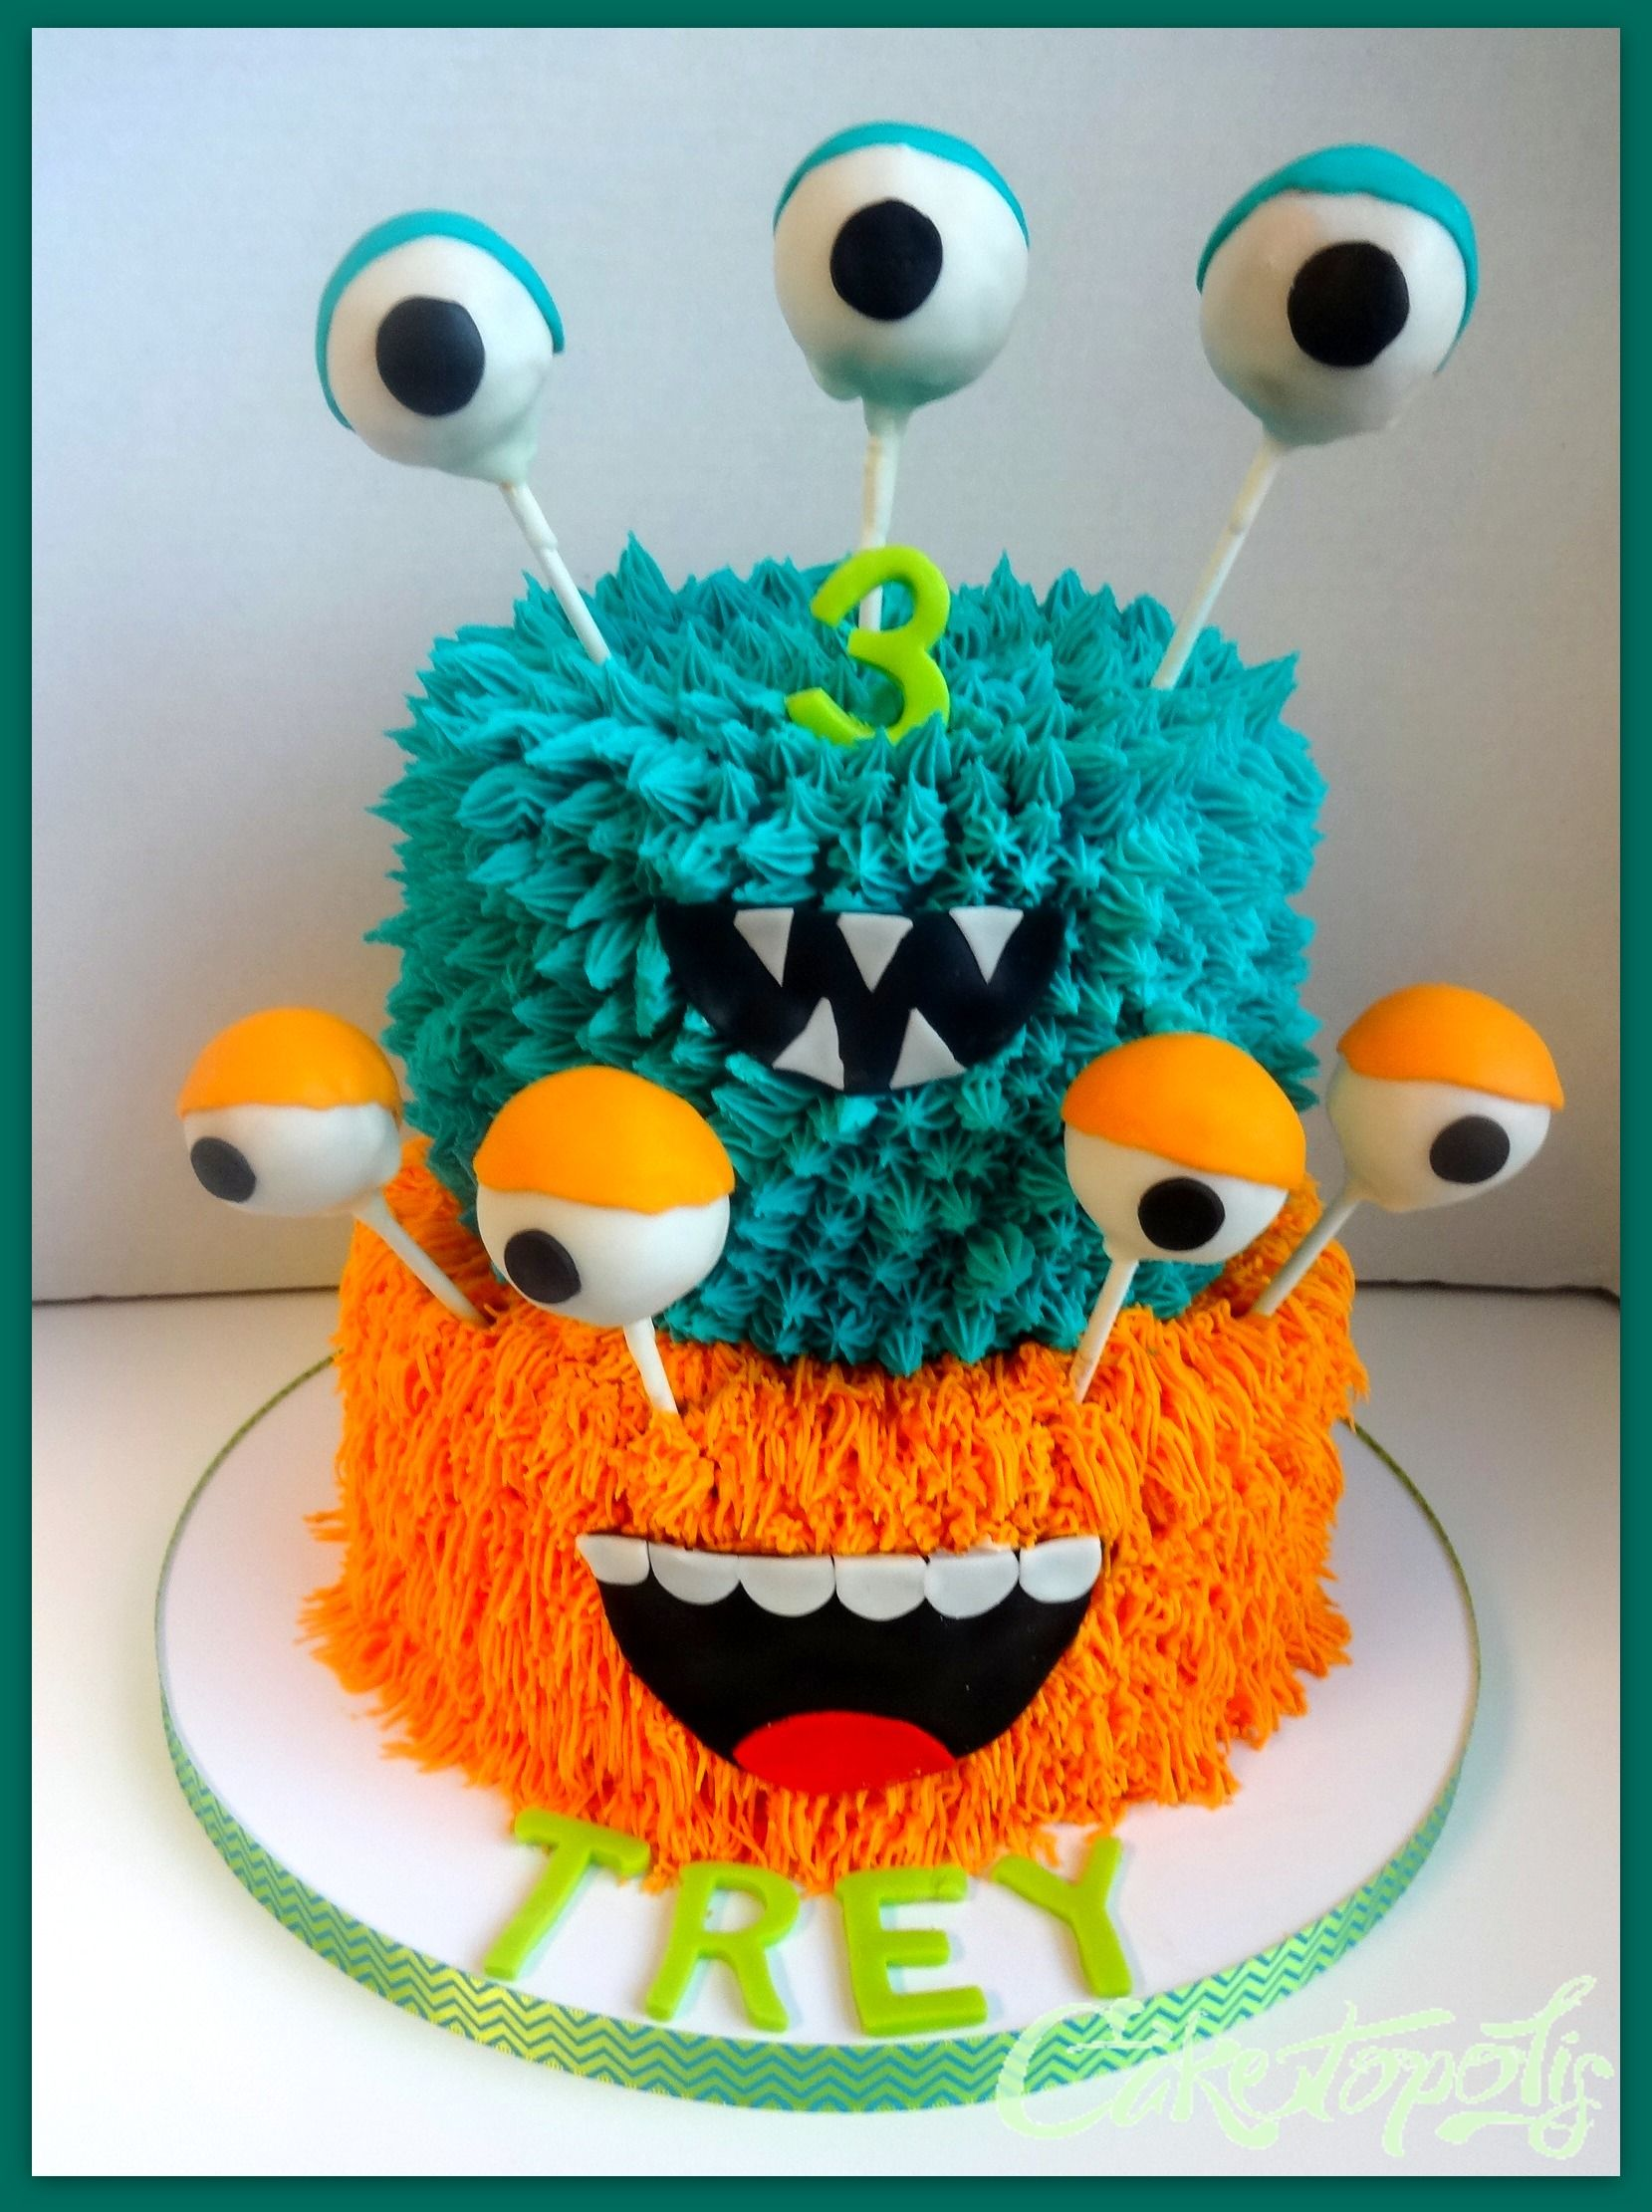 Monster Birthday Cake Buttercream monster cake with cake balls